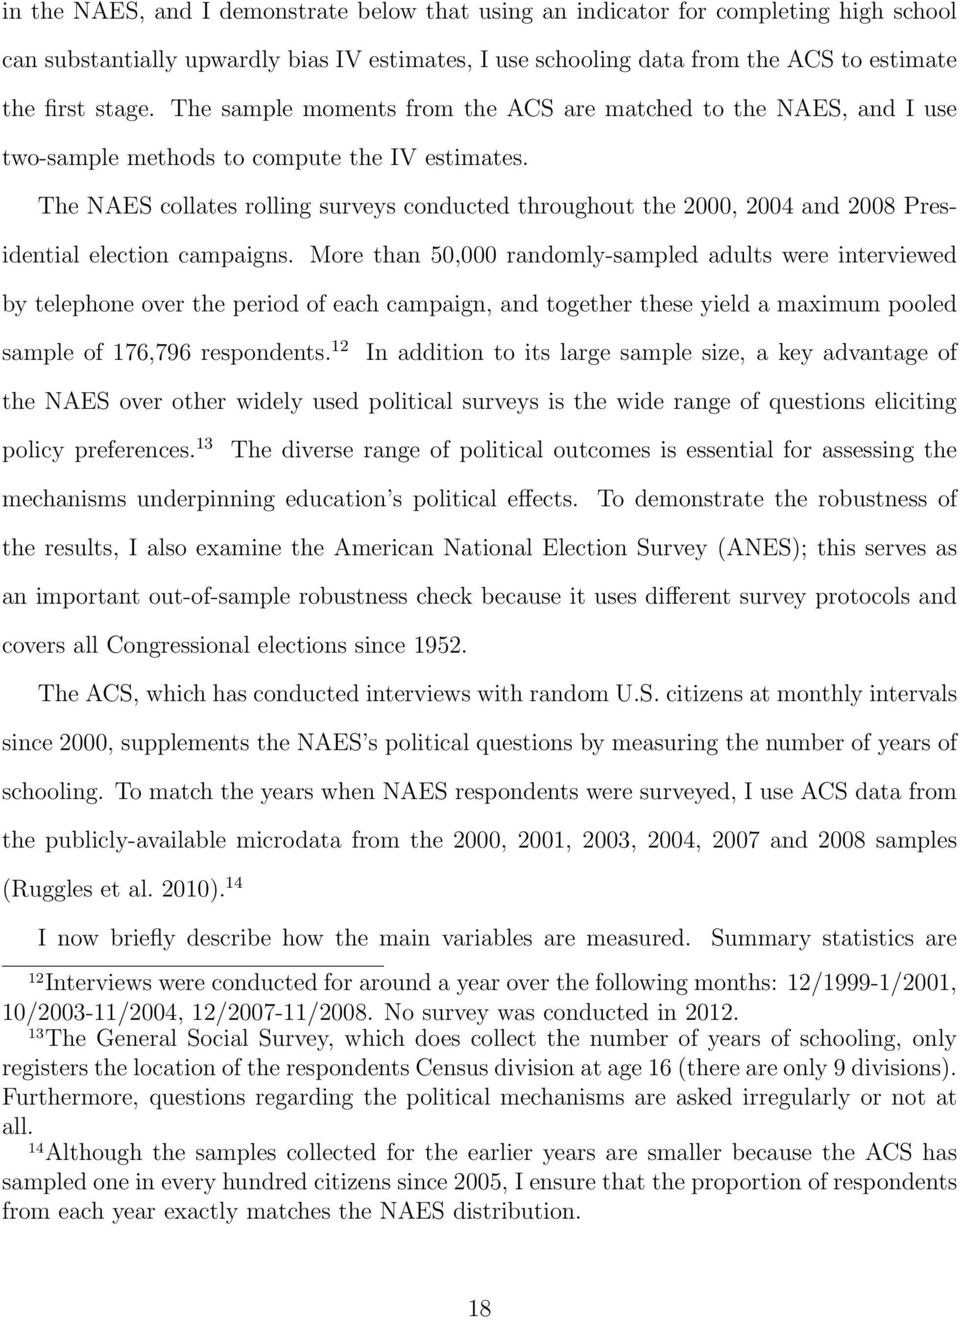 The NAES collates rolling surveys conducted throughout the 2000, 2004 and 2008 Presidential election campaigns.